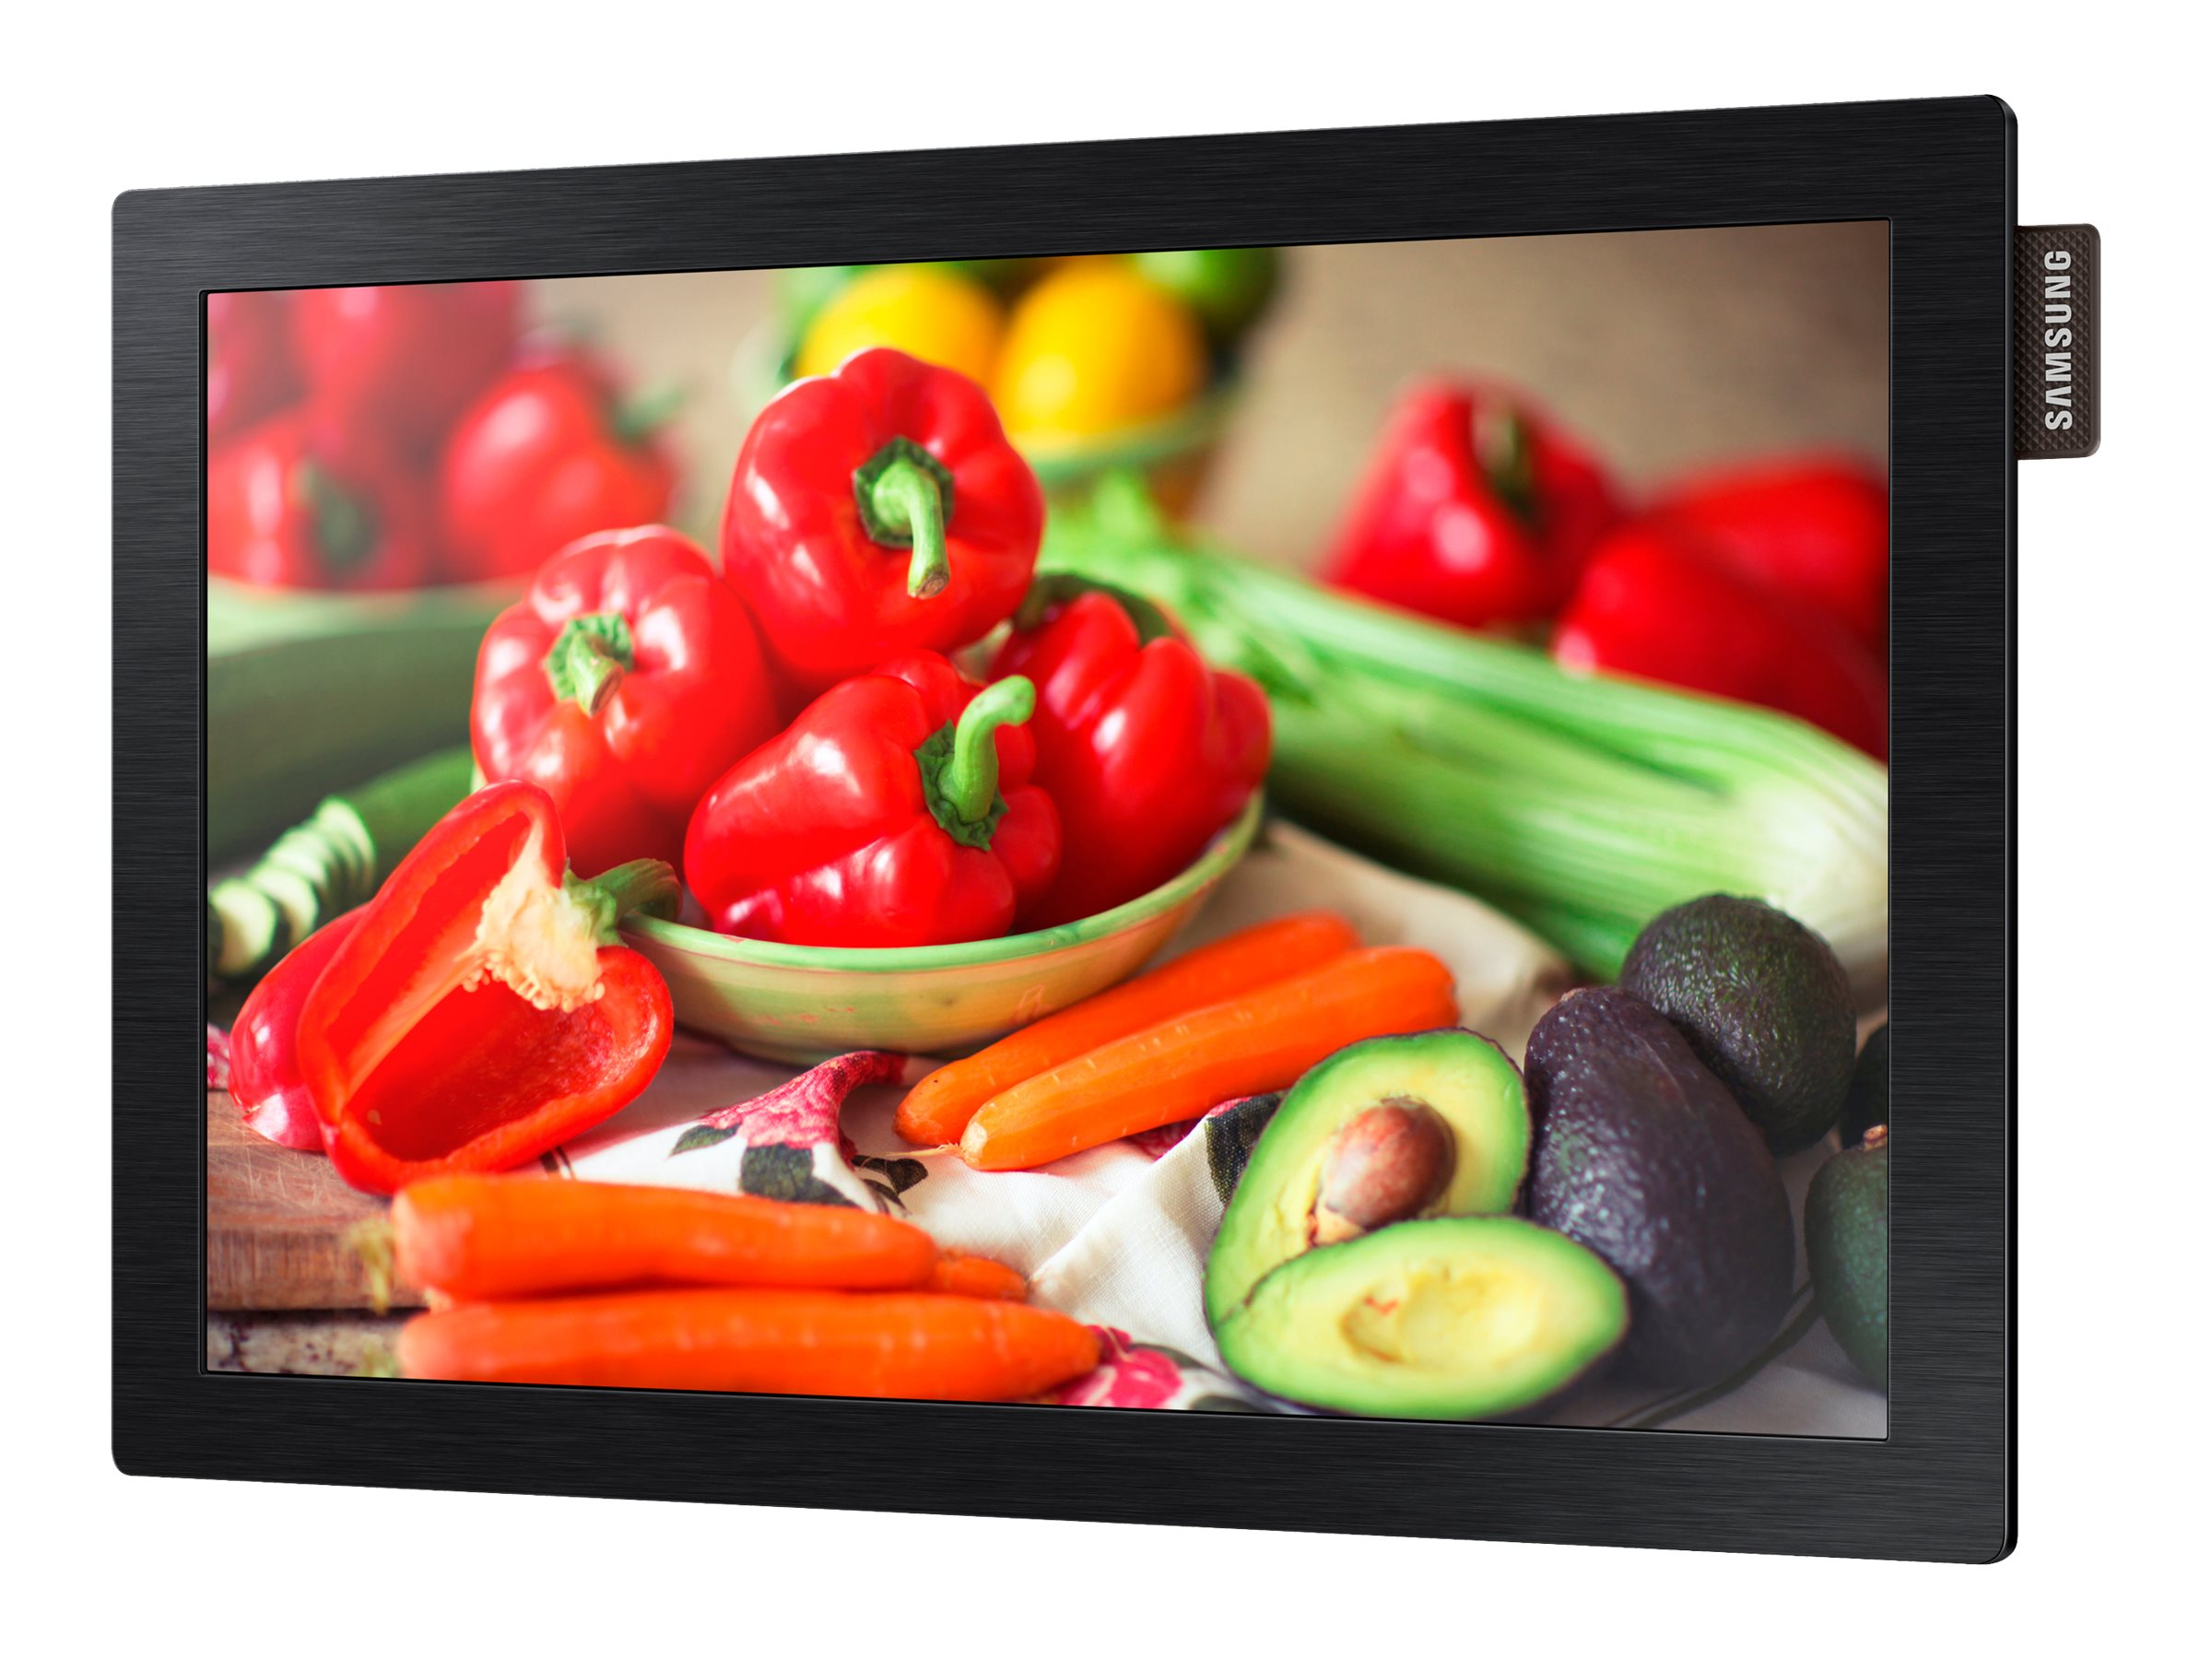 Samsung 10.1 DB10D LED-LCD Display, Black, DB10D